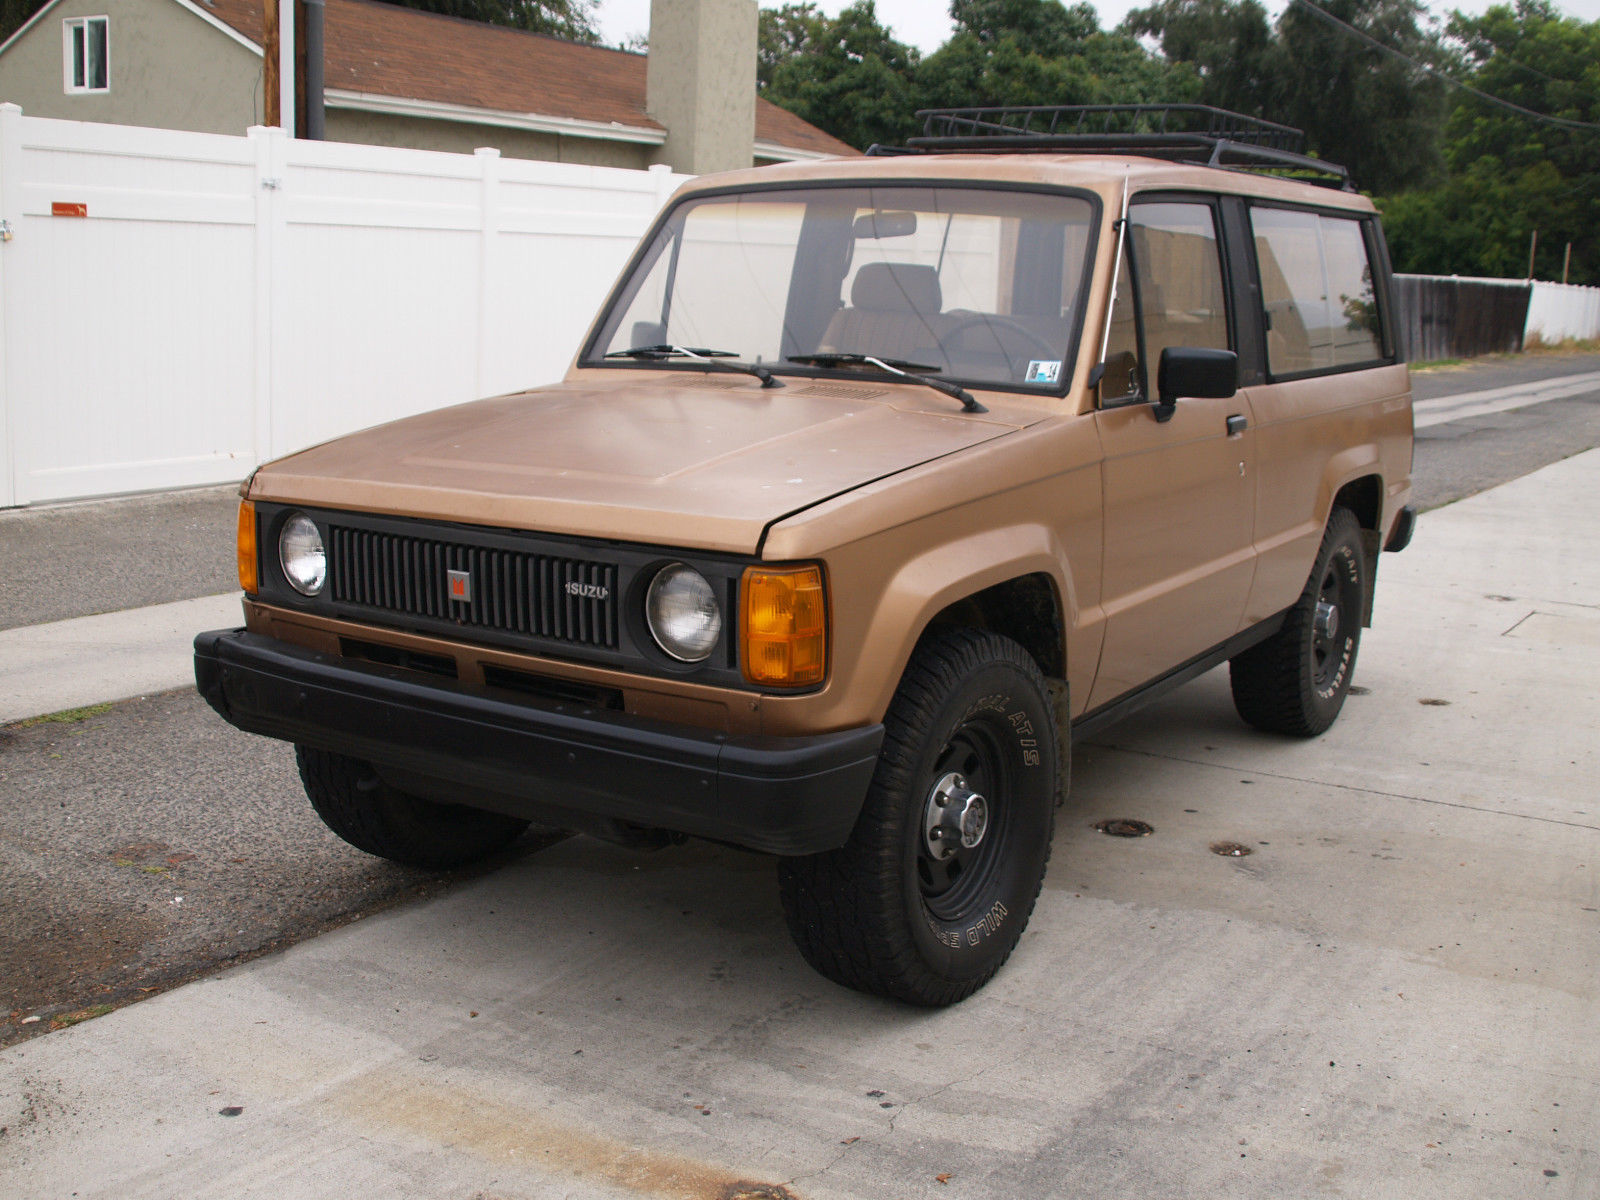 Manual Transmission >> 1986 Isuzu Trooper DLX Turbo Diesel 4x4 2-Door Manual Transmission - Turbo Tuesday